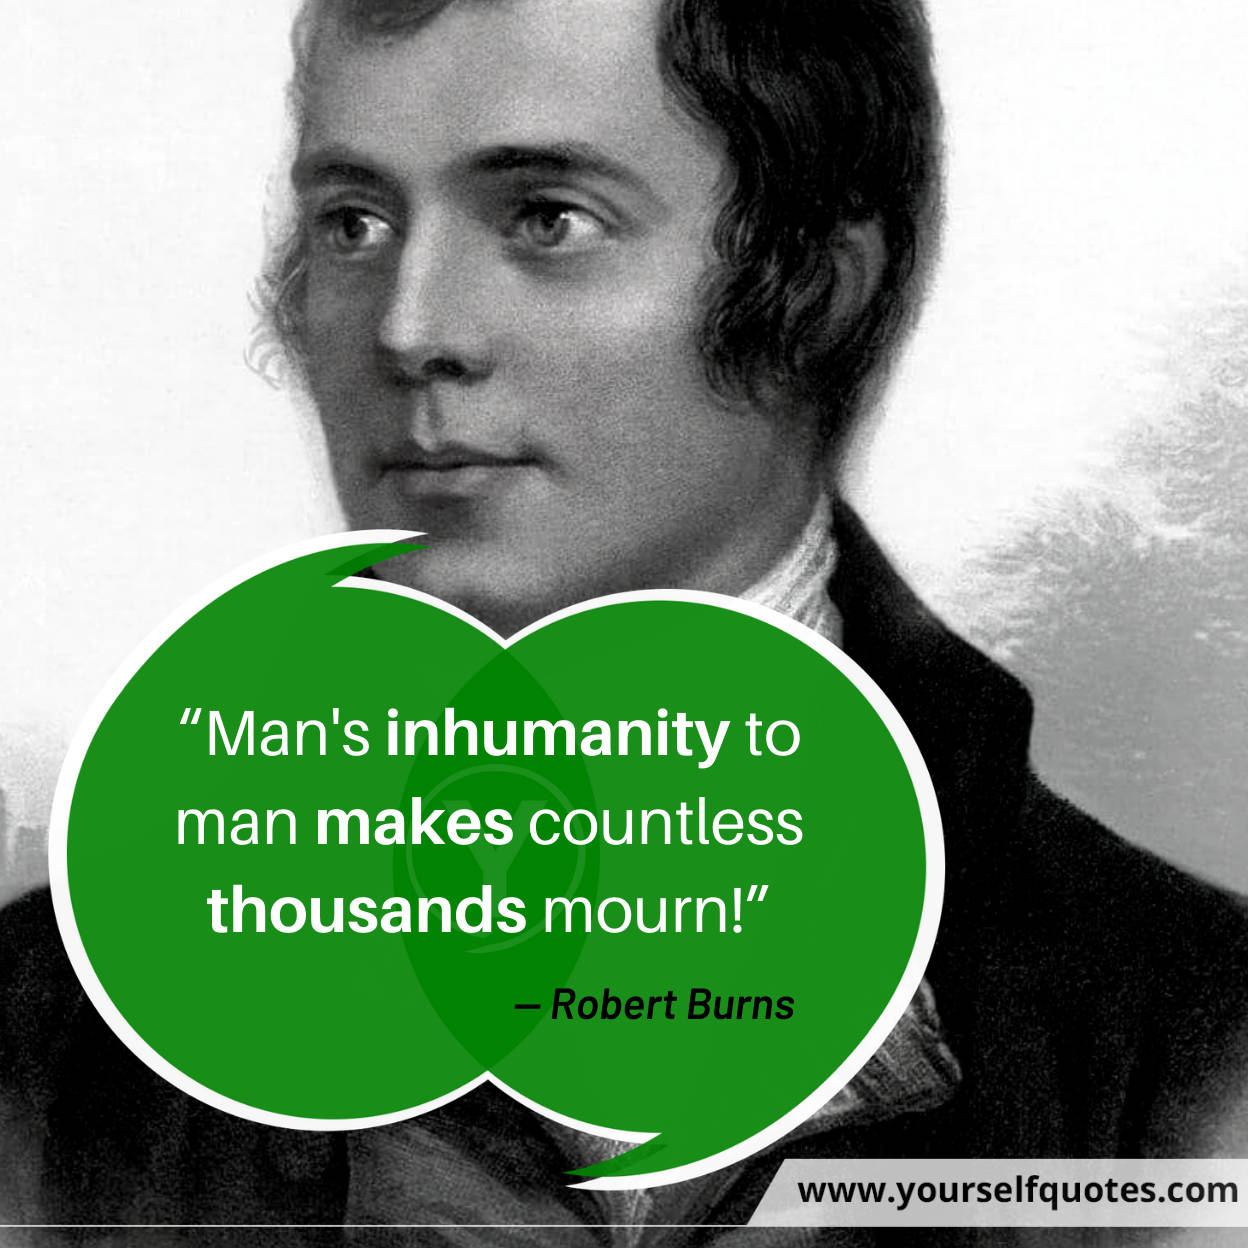 Quotations By Robert Burns